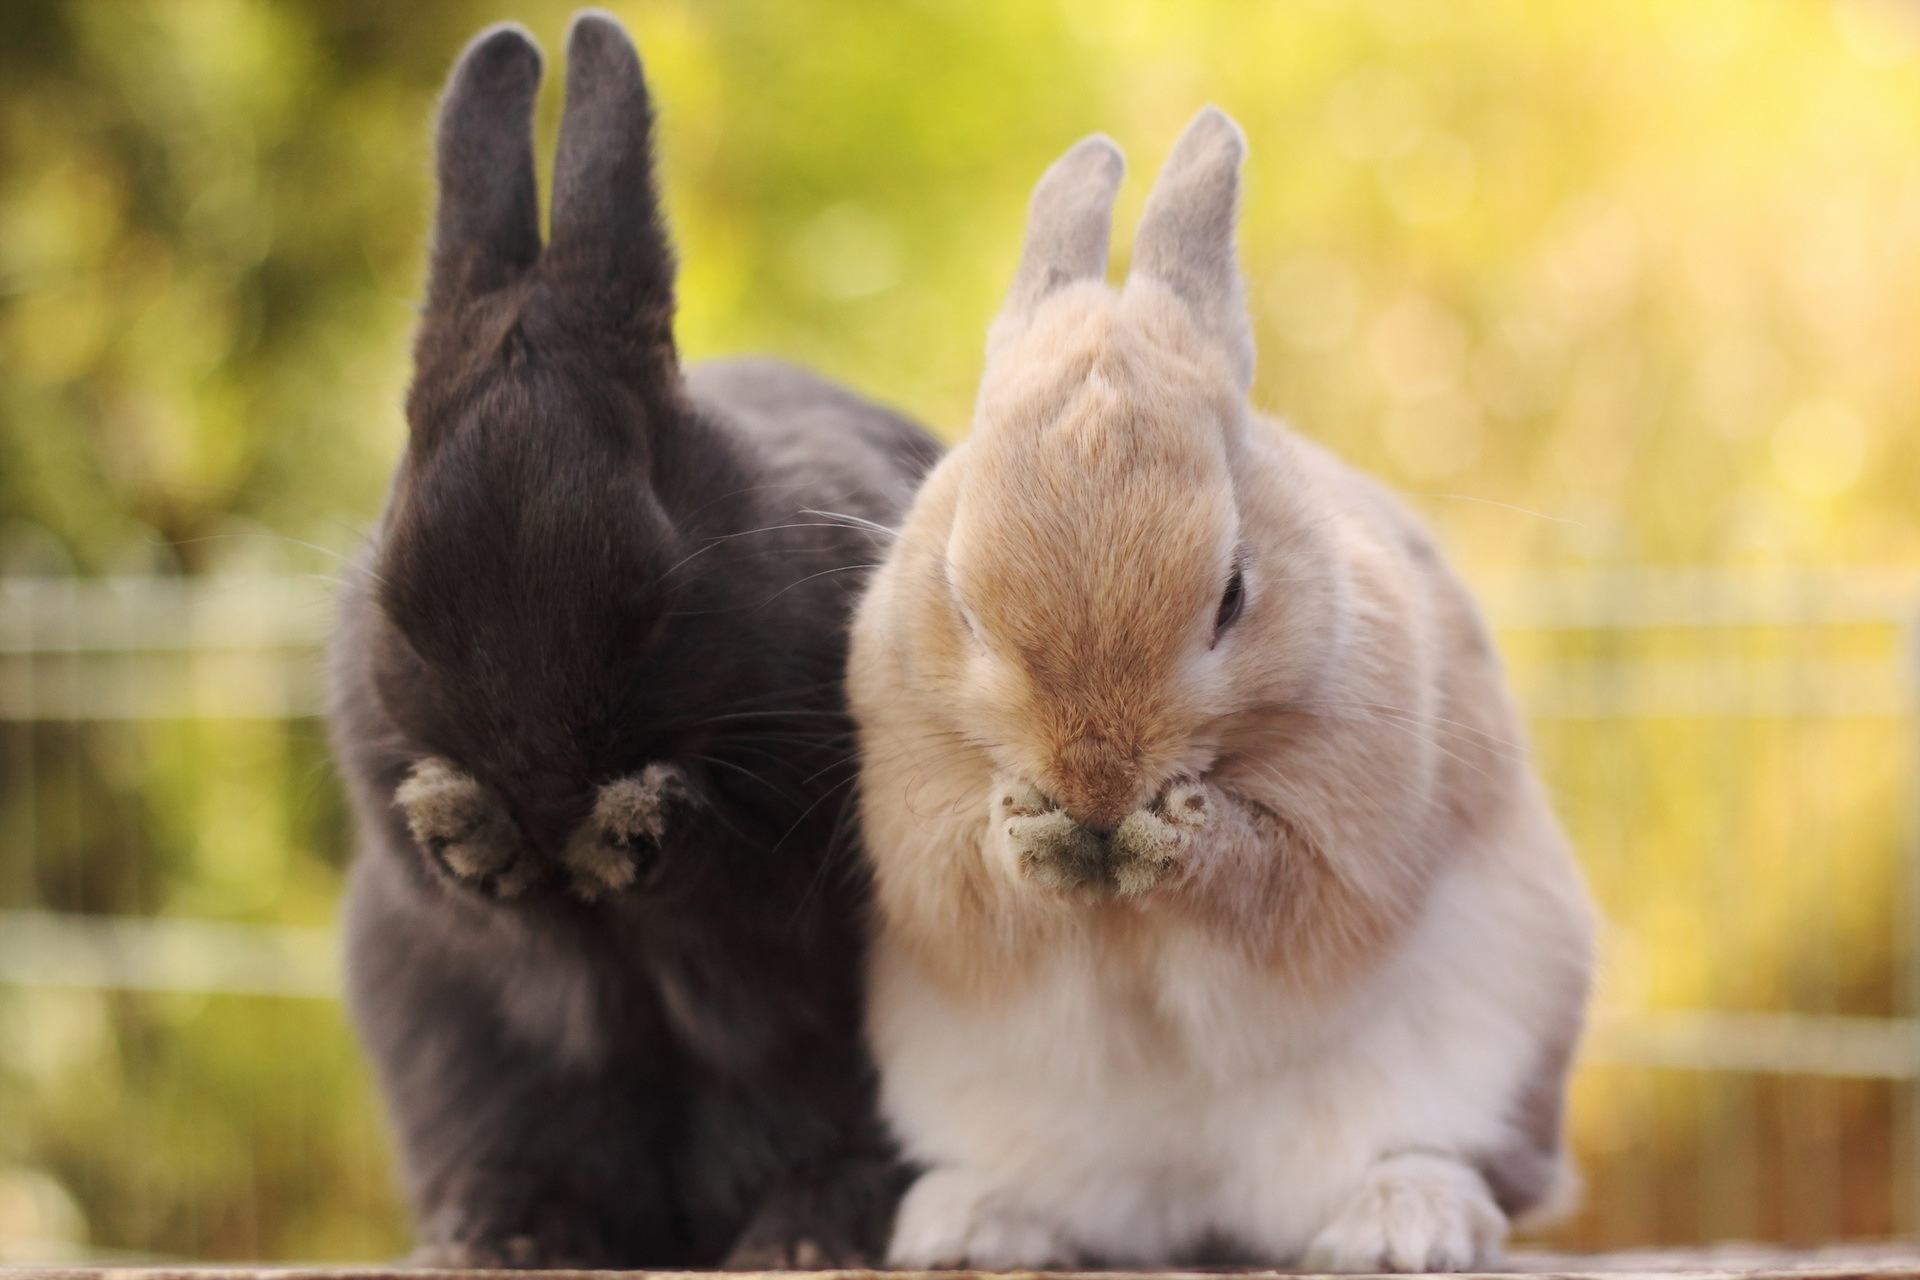 Rabbit Wallpapers, Full HDQ Rabbit Pictures and Wallpapers